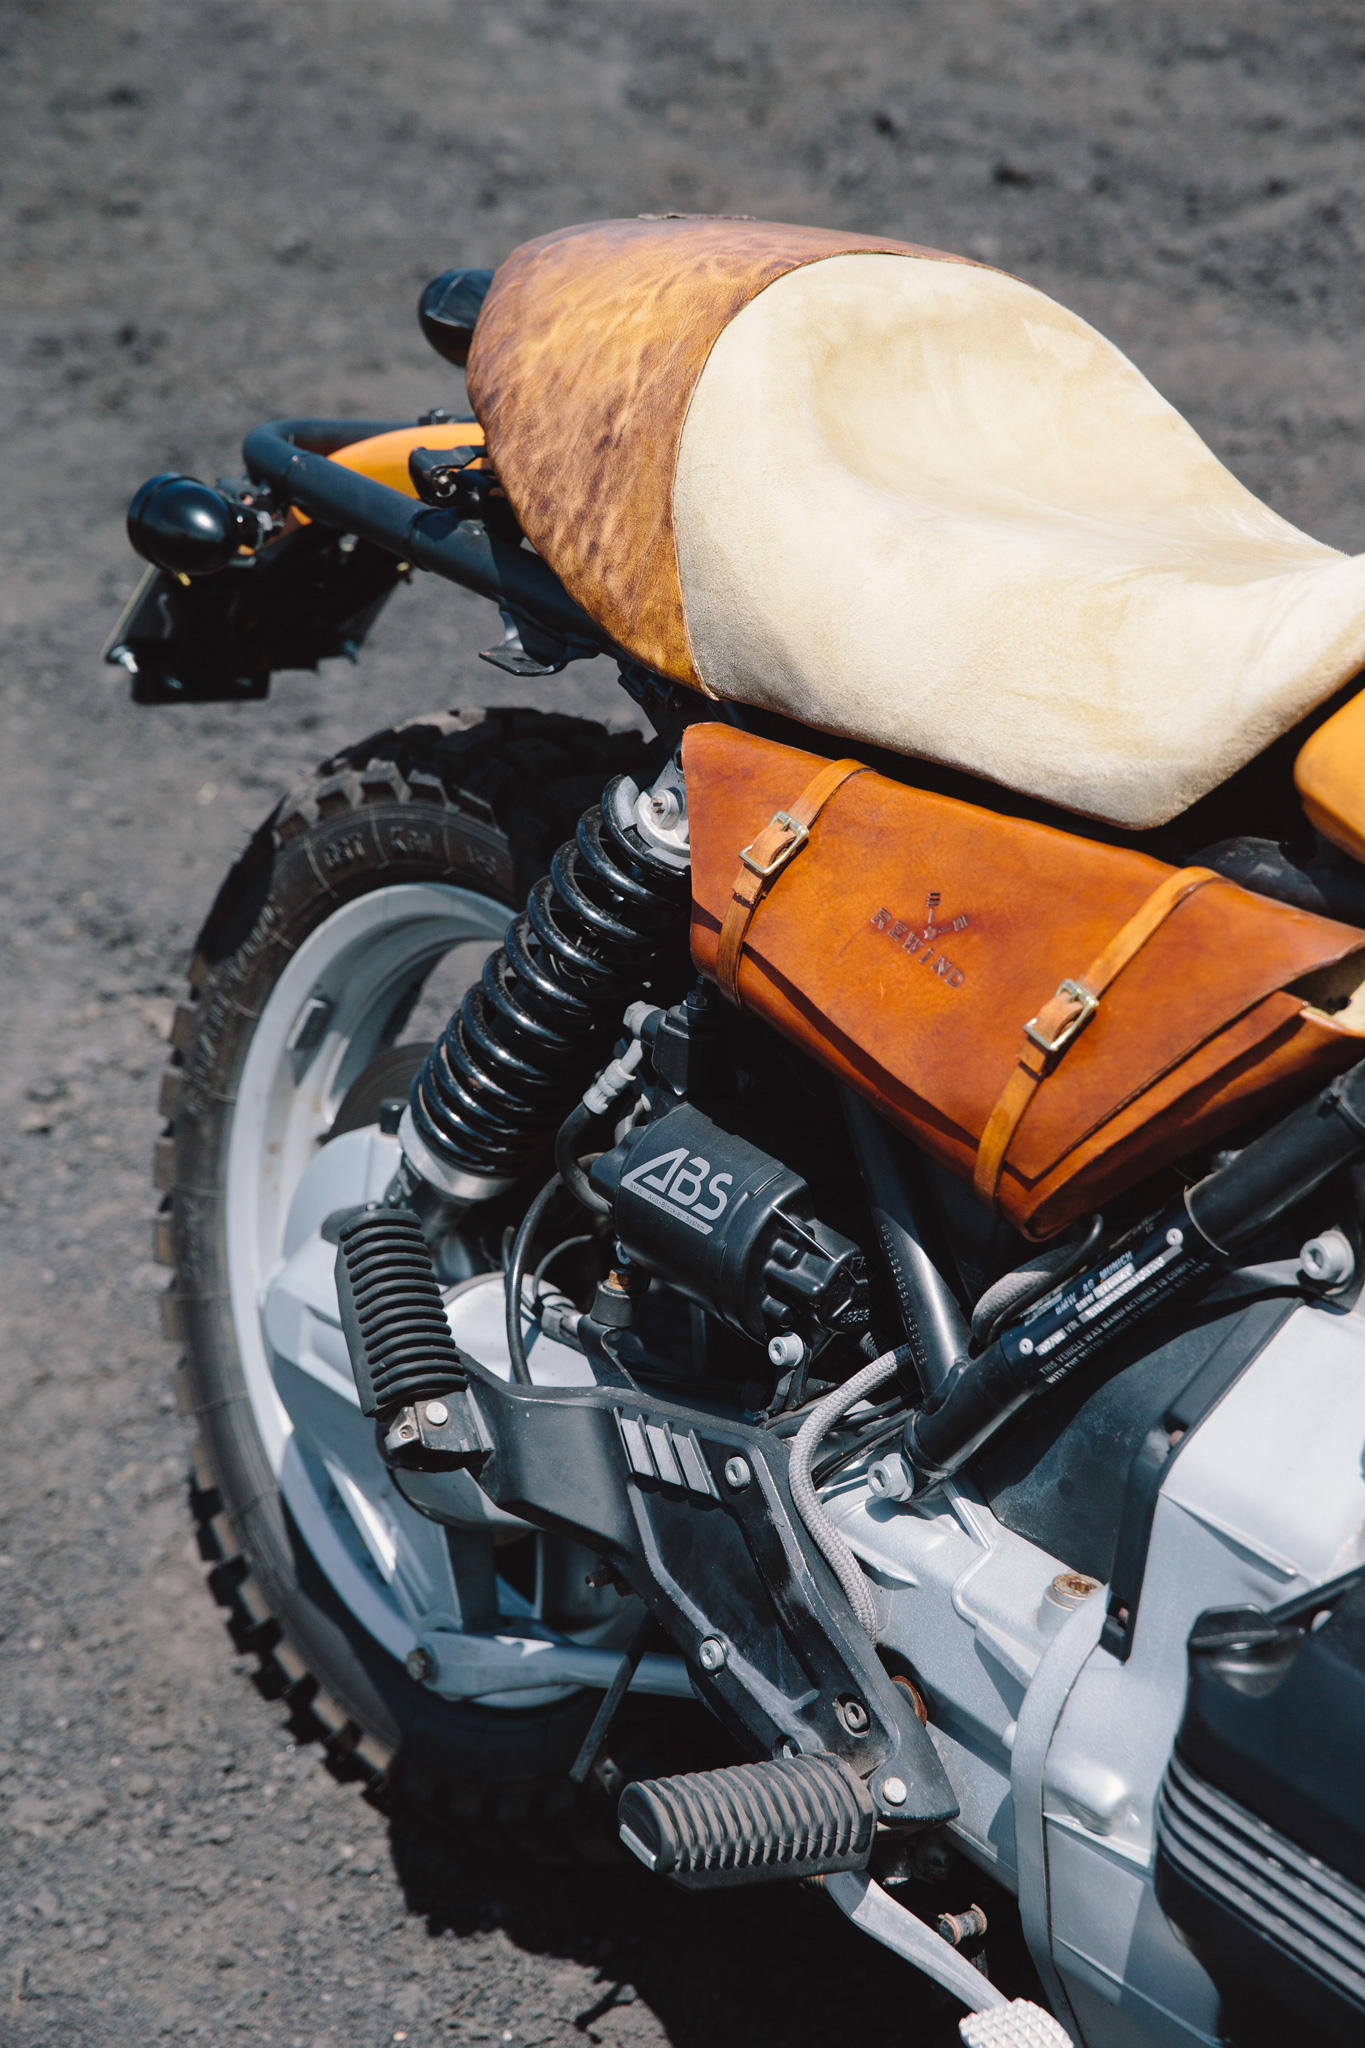 bmw_k1100_tracker_cafe_racer-311